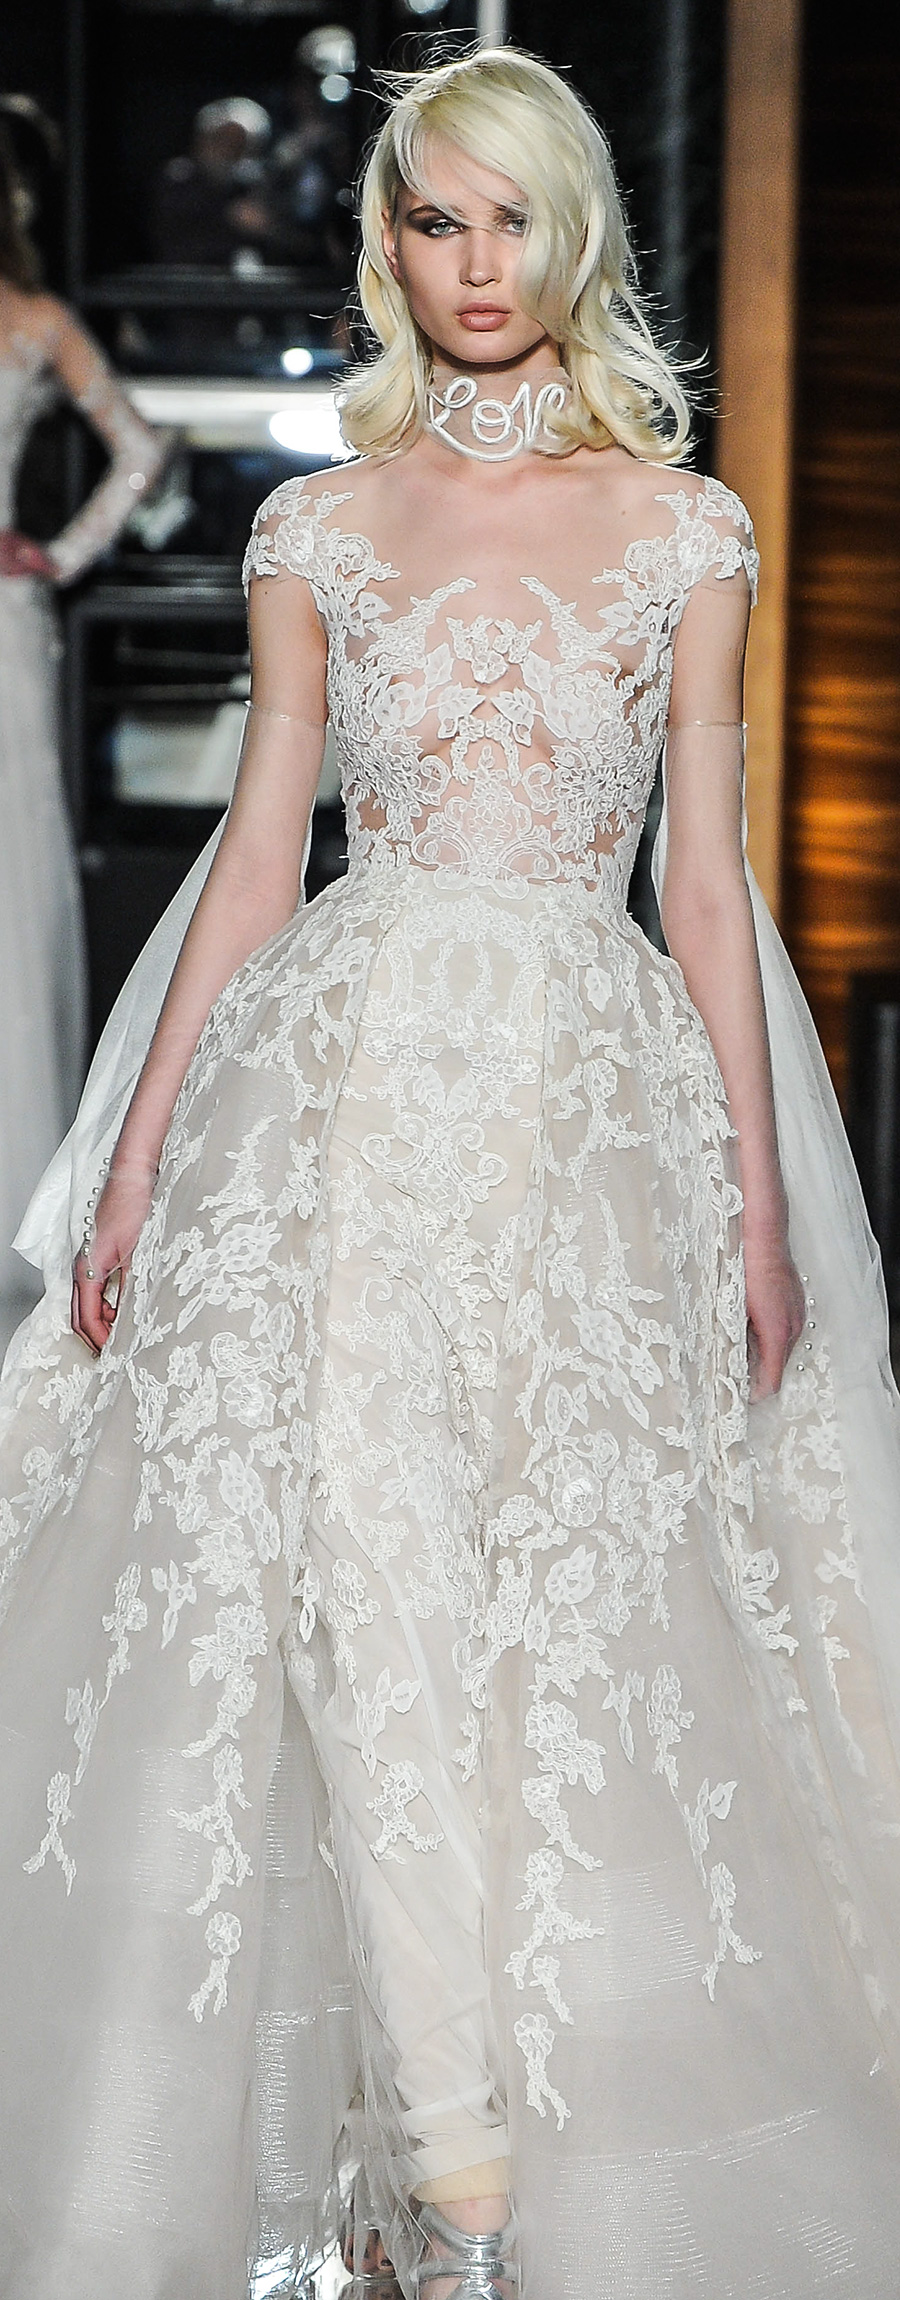 reem acra spring 2018 bridal cap sleeves scoop neckline full embellishment glamorous princess ball gown wedding dress lace back chapel train (19couture) zv